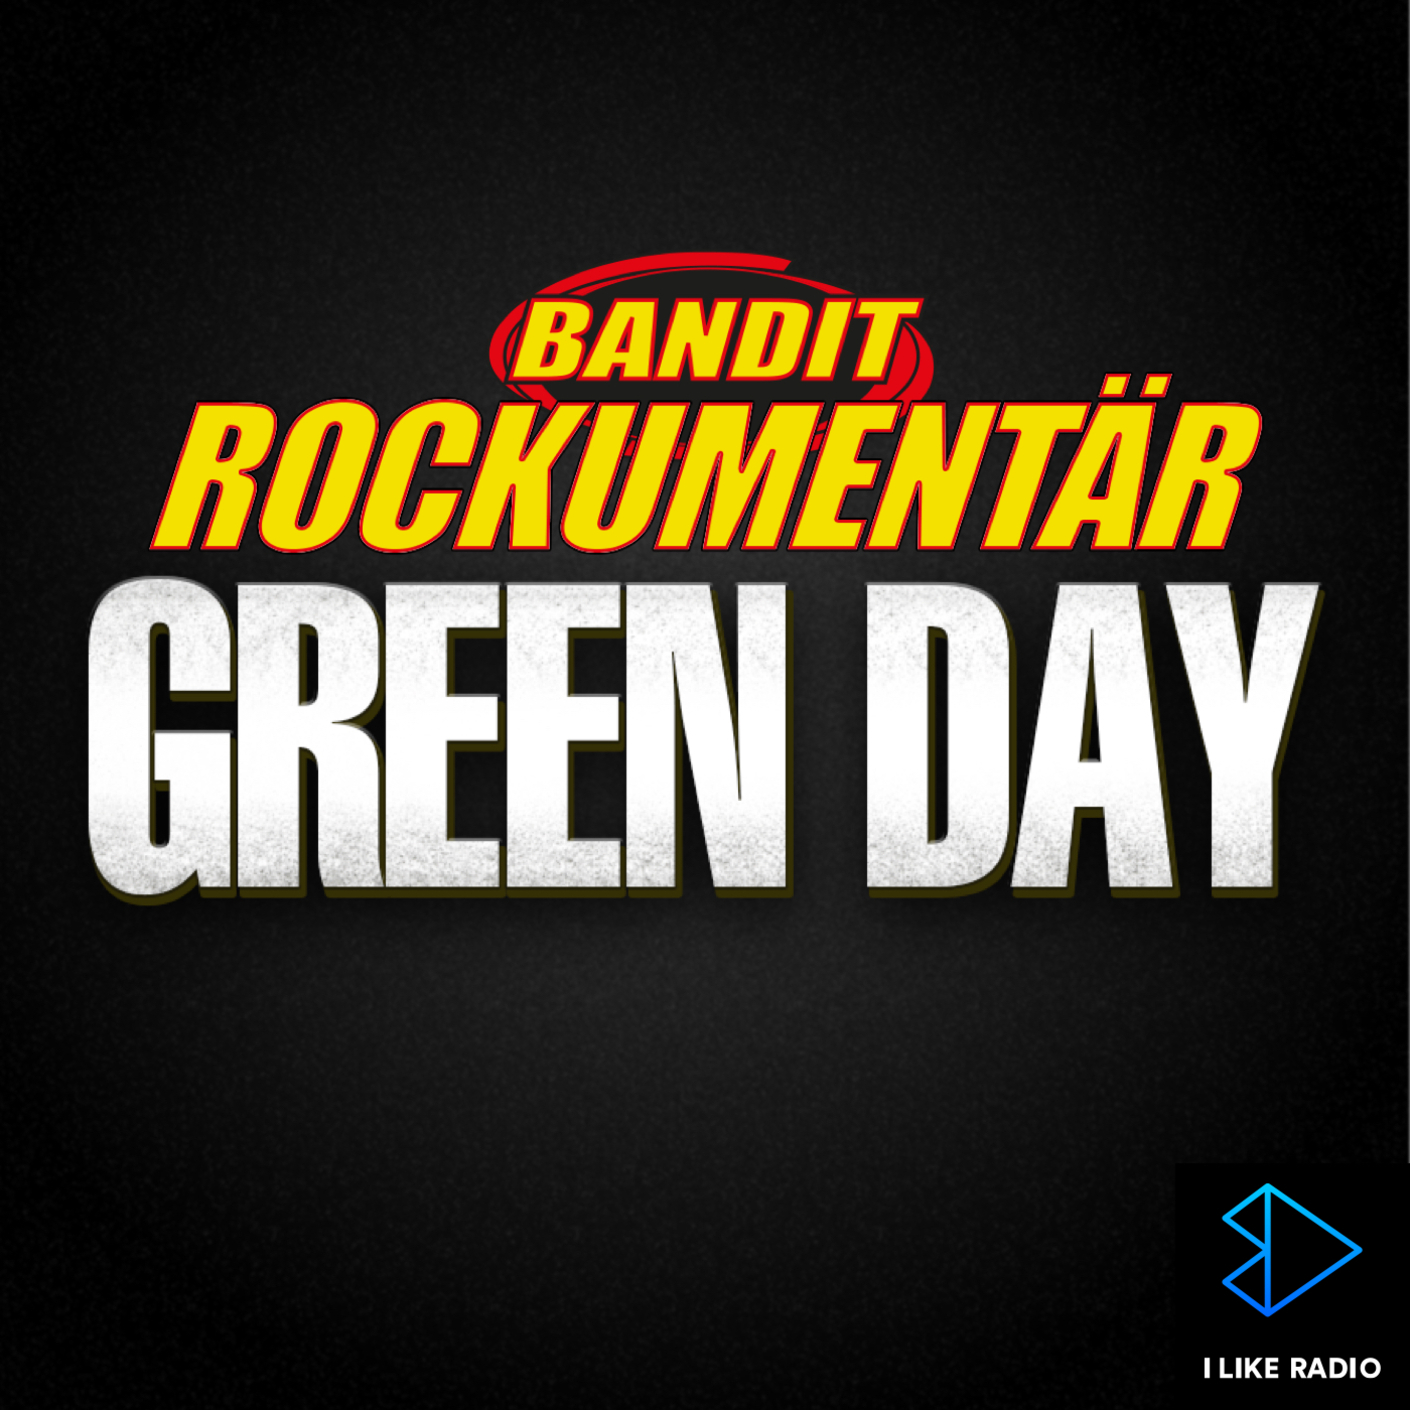 4. Green Day